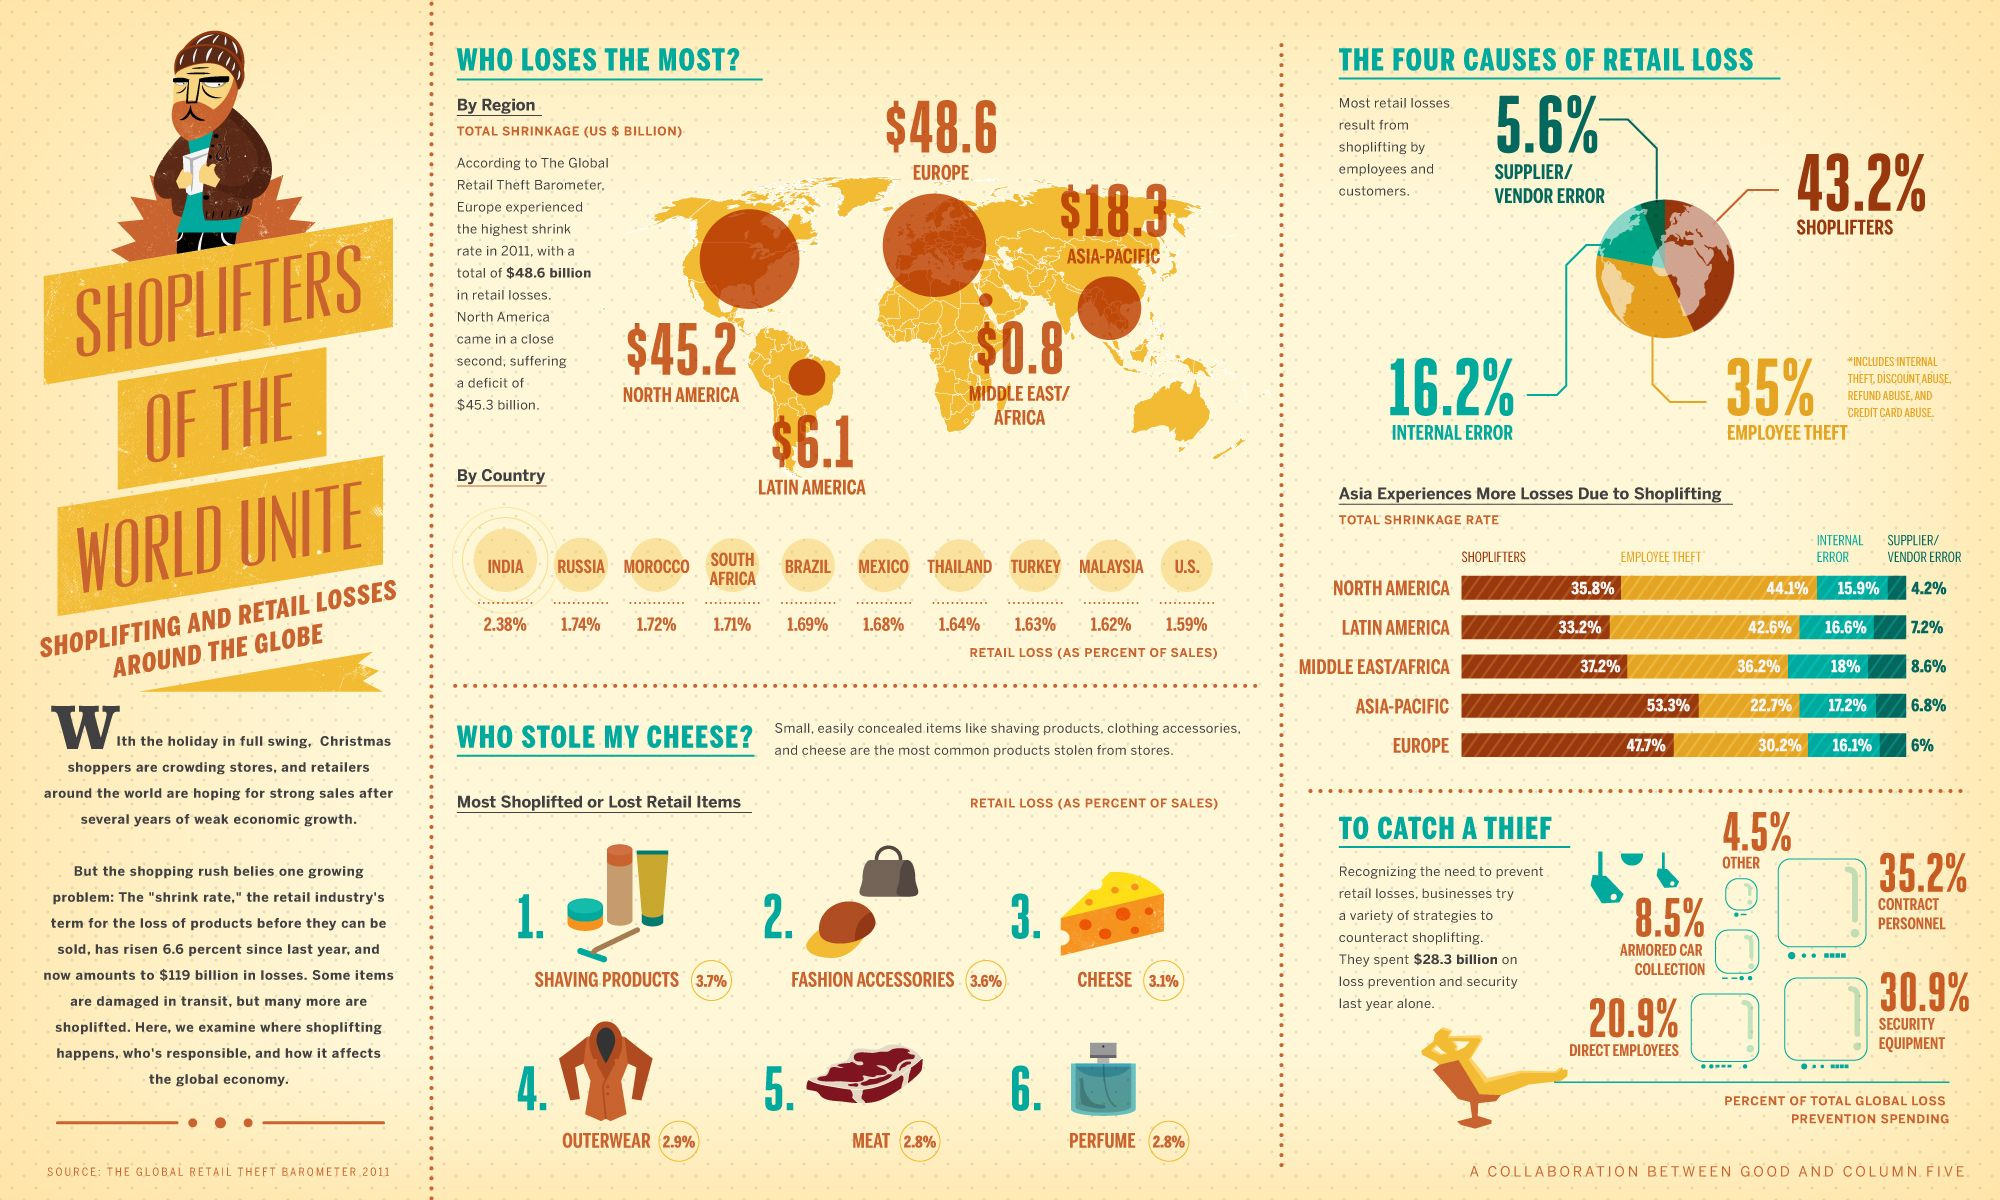 infographic on shrink rate - or the loss of goods before they are